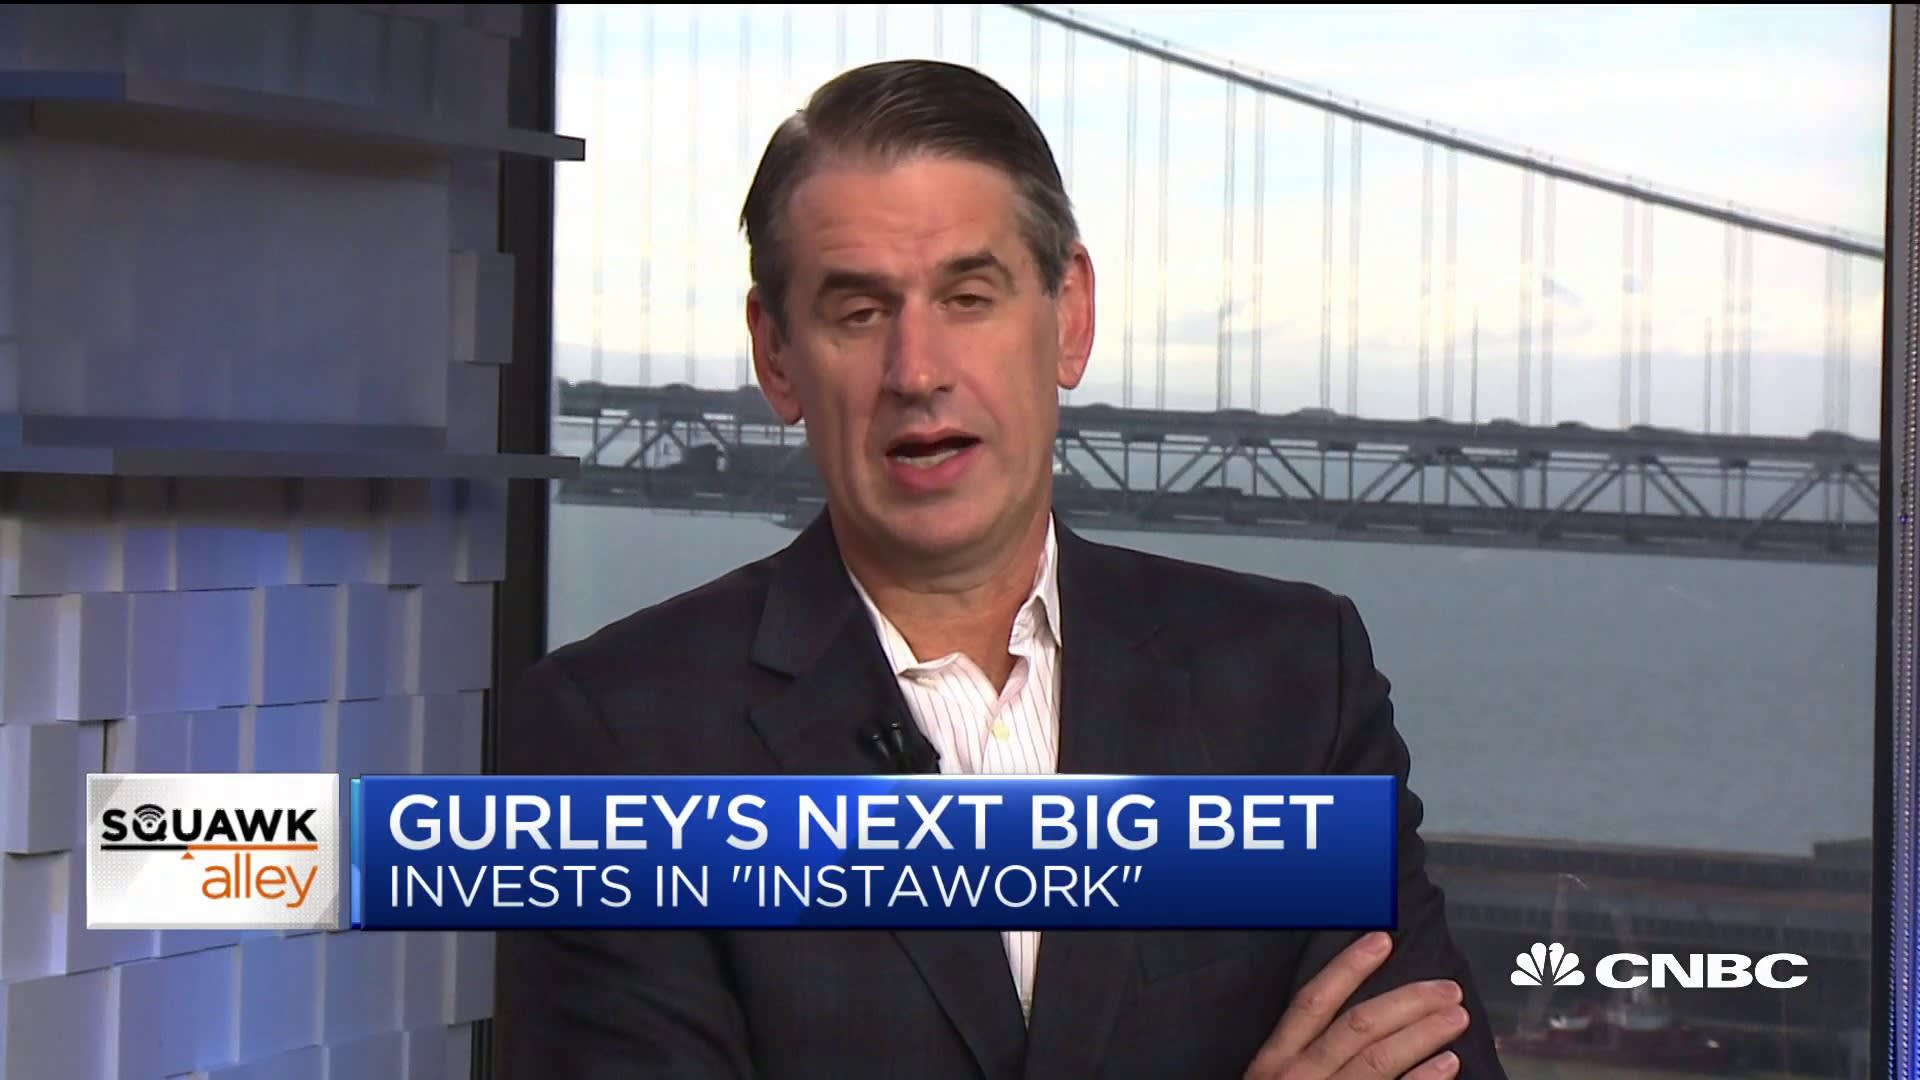 Early Uber investor Bill Gurley evangelizes the social benefits of the work-when-you-want-to gig economy